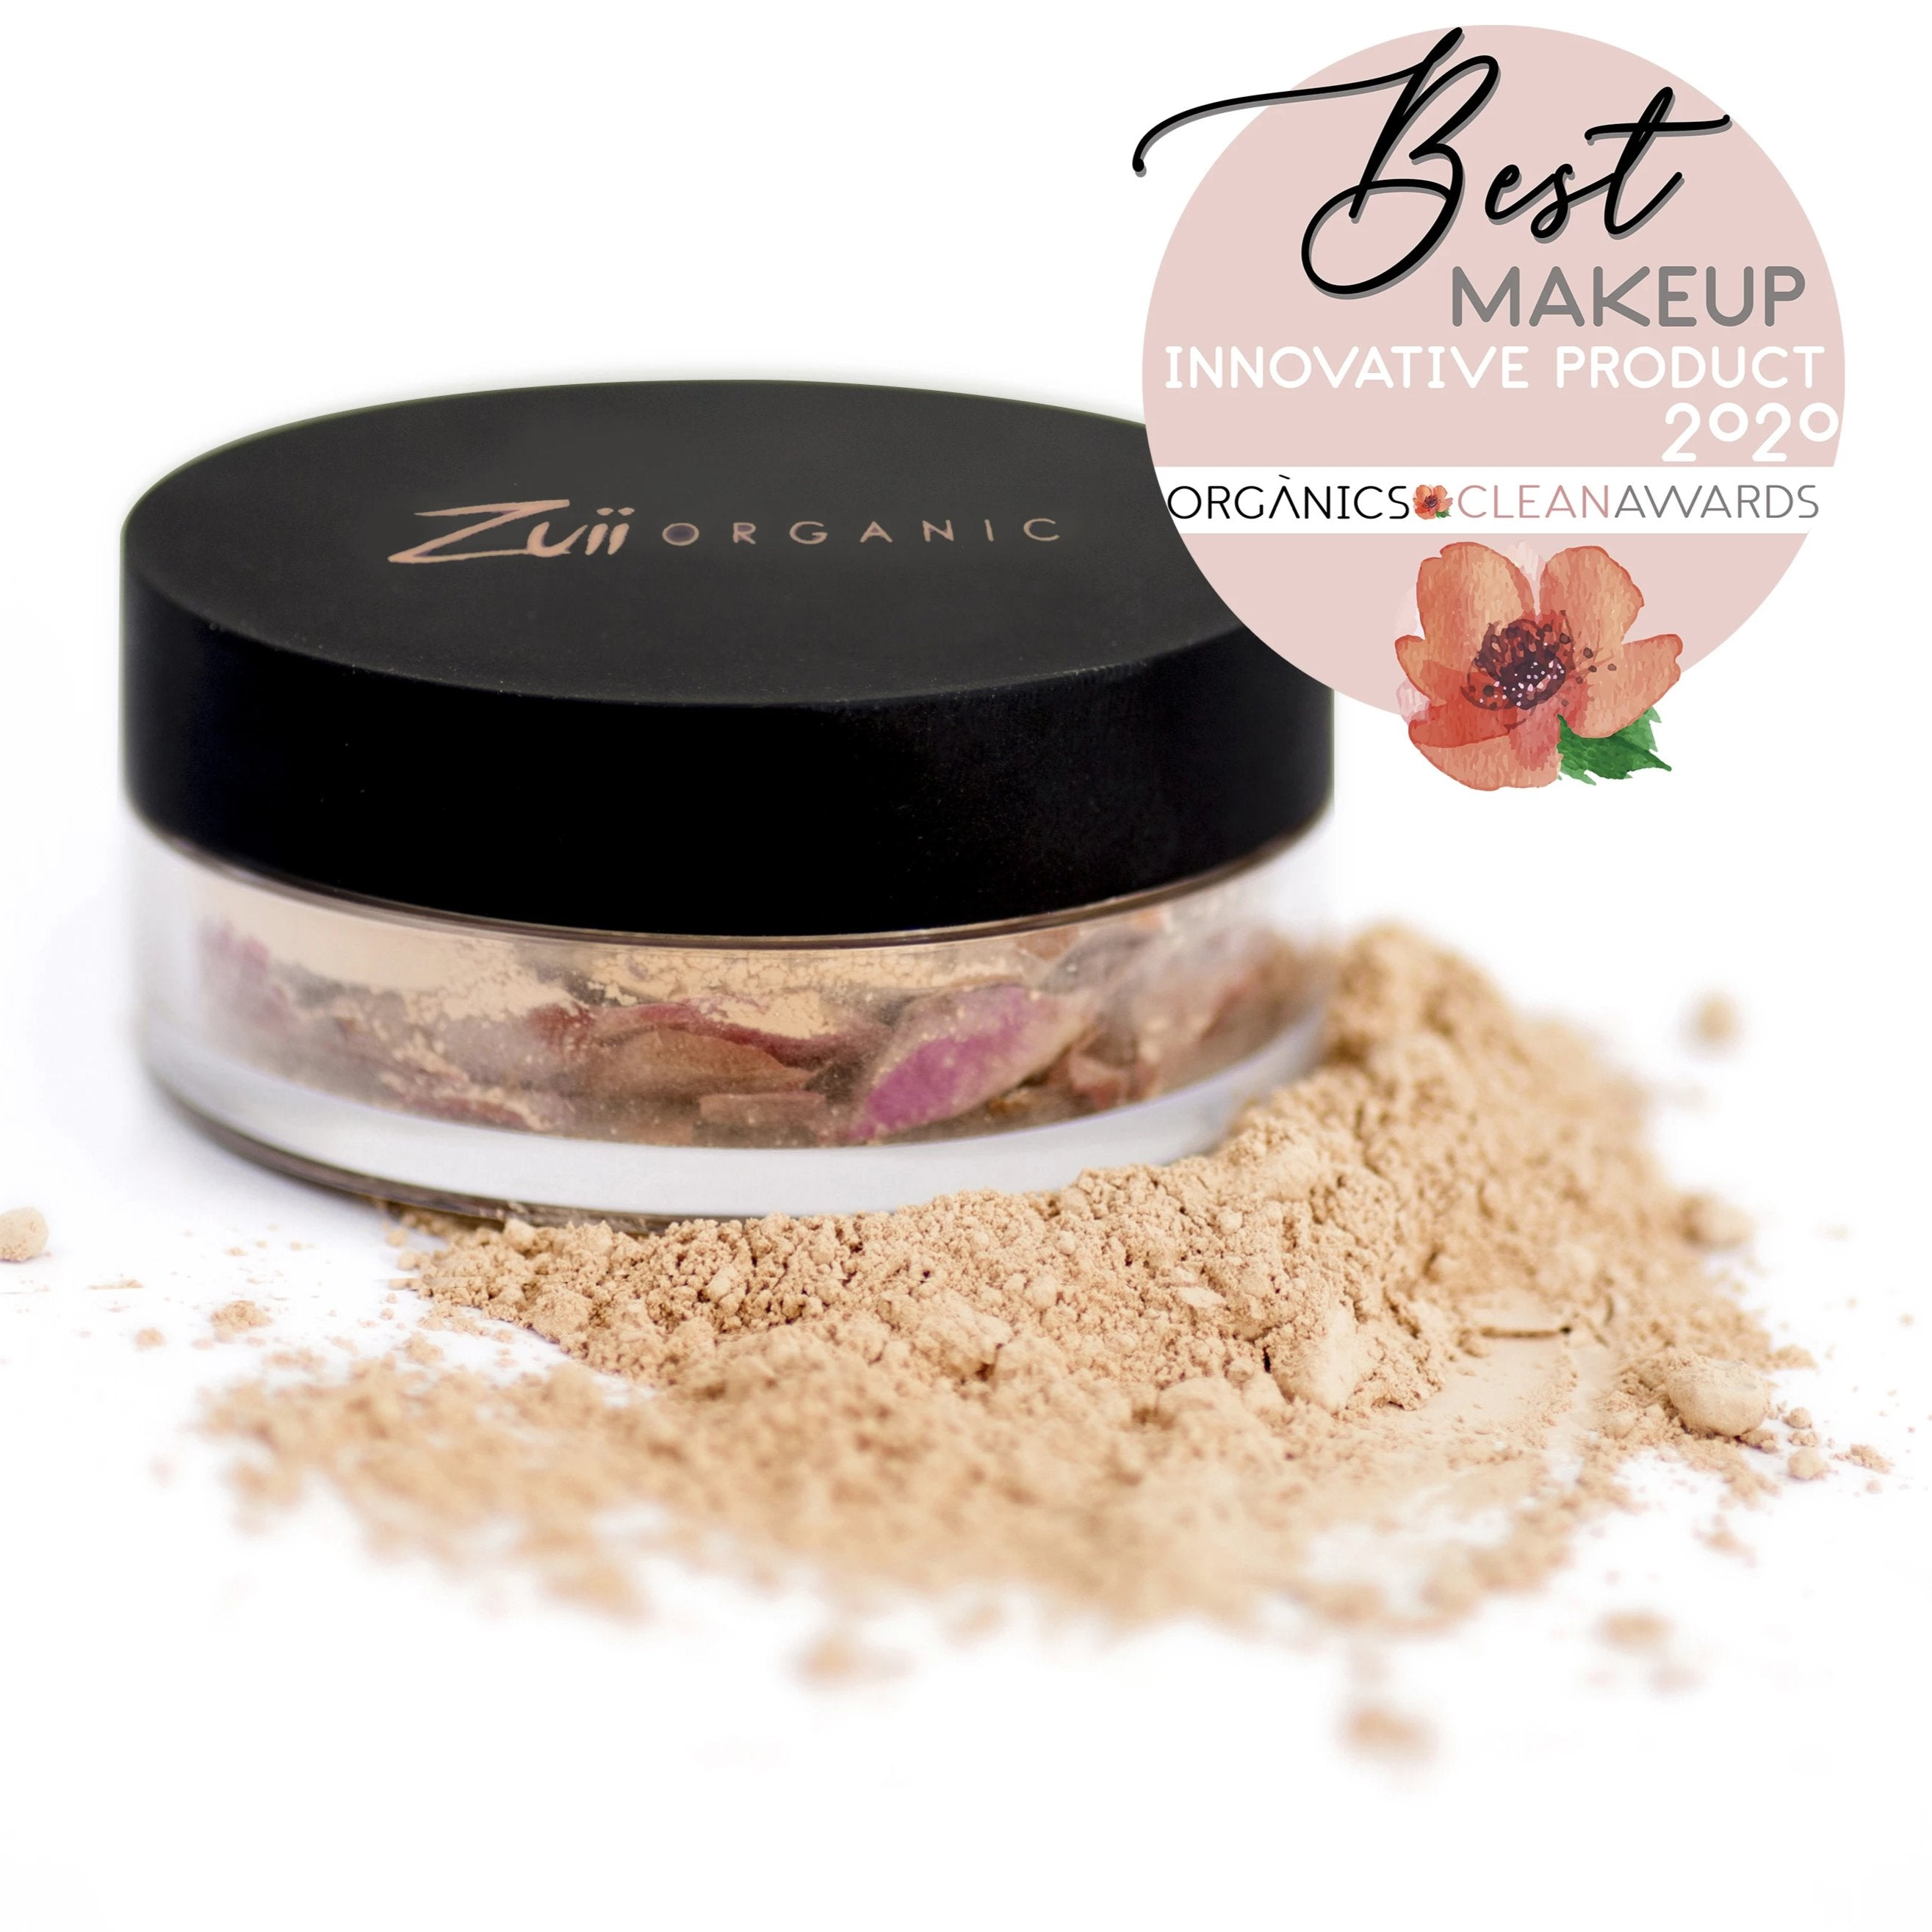 ZUII CERTIFIED ORGANIC LUX FINISHING POWDER